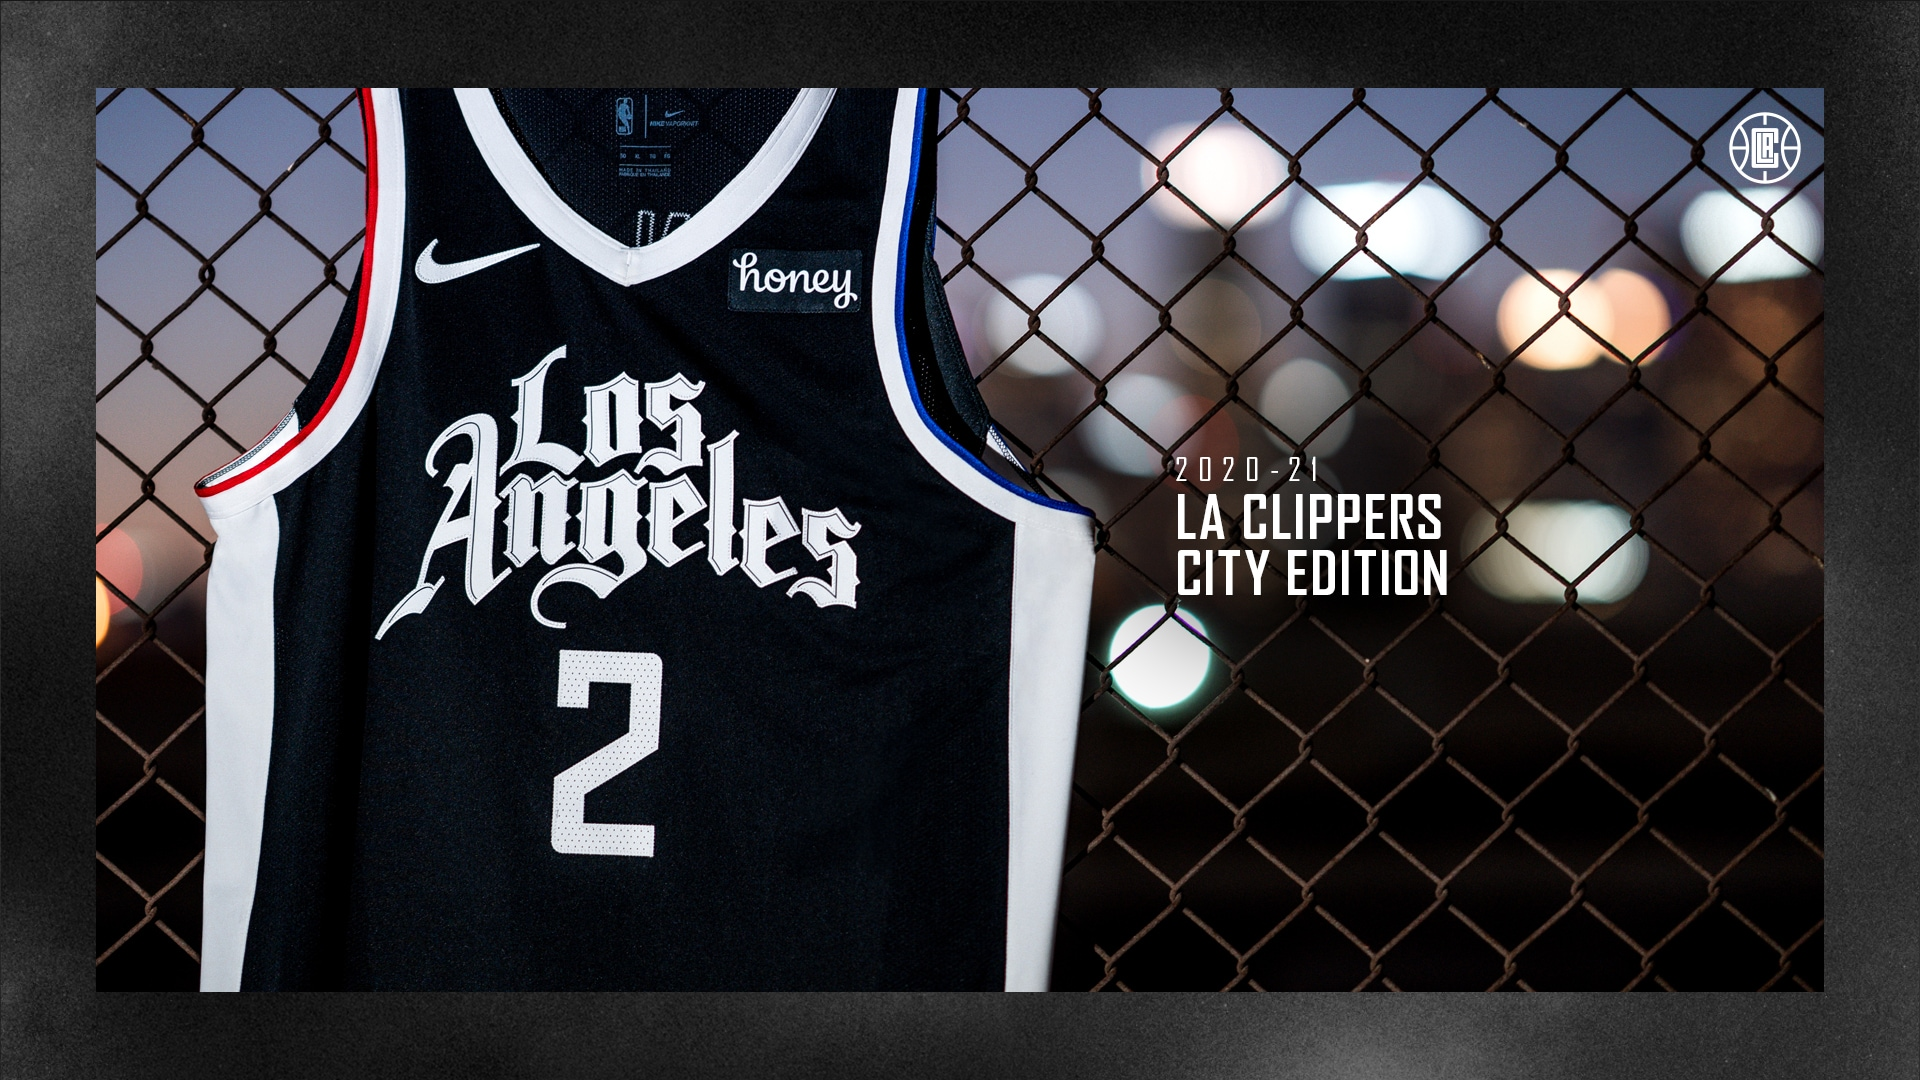 La Clippers Unveil 2020 21 Nike City Edition Uniform